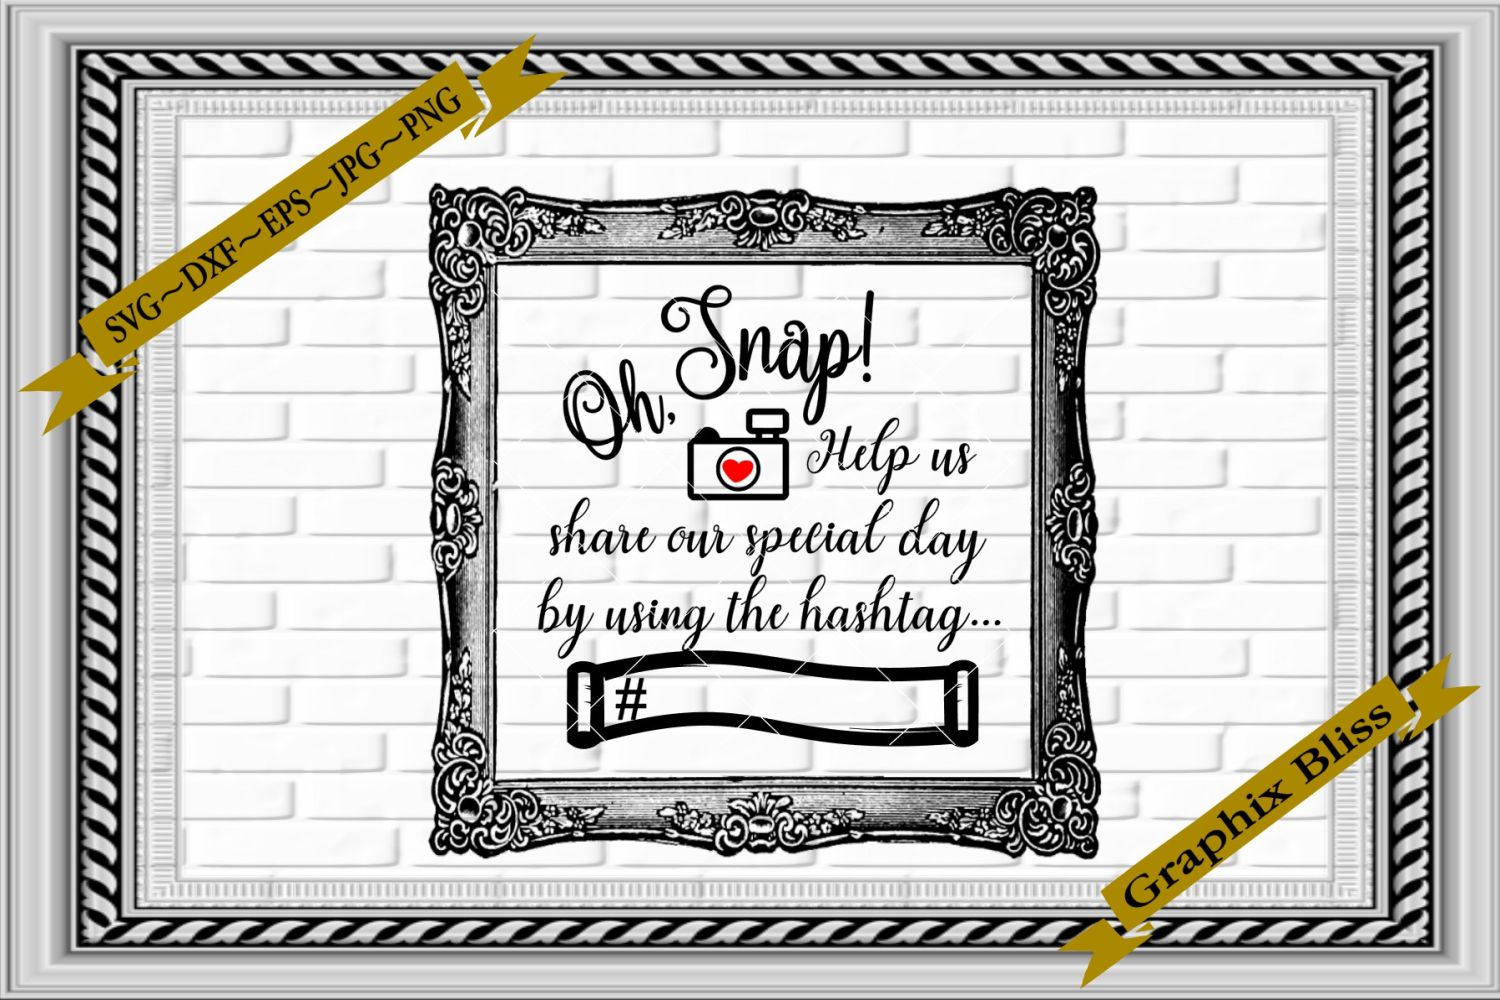 Wedding Reception Oh Snap Share Photos Hashtag SVG example image 1